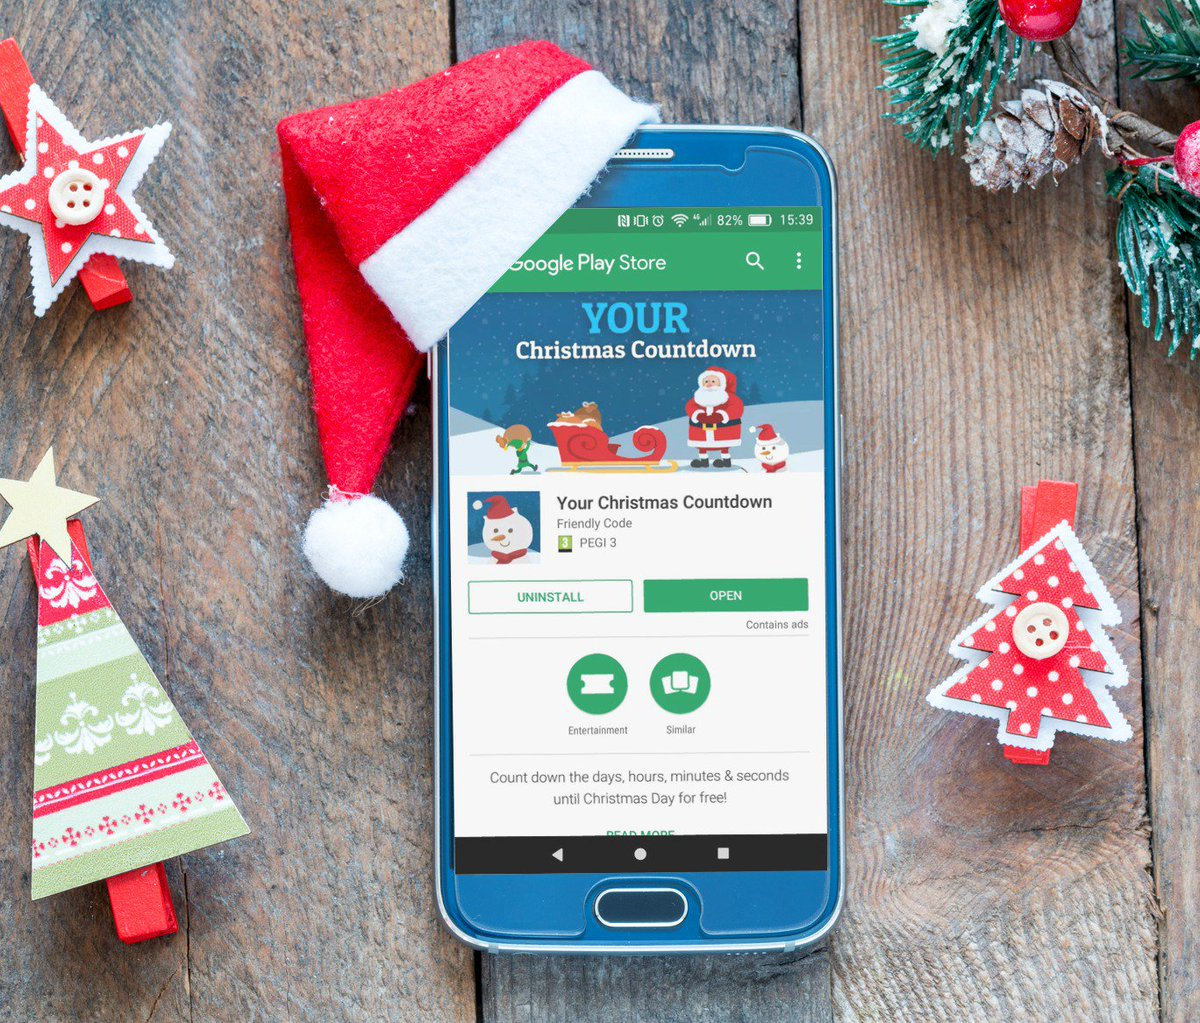 christmas countdown on twitter the wait for android users is over download your christmas countdown for free from the google play store now